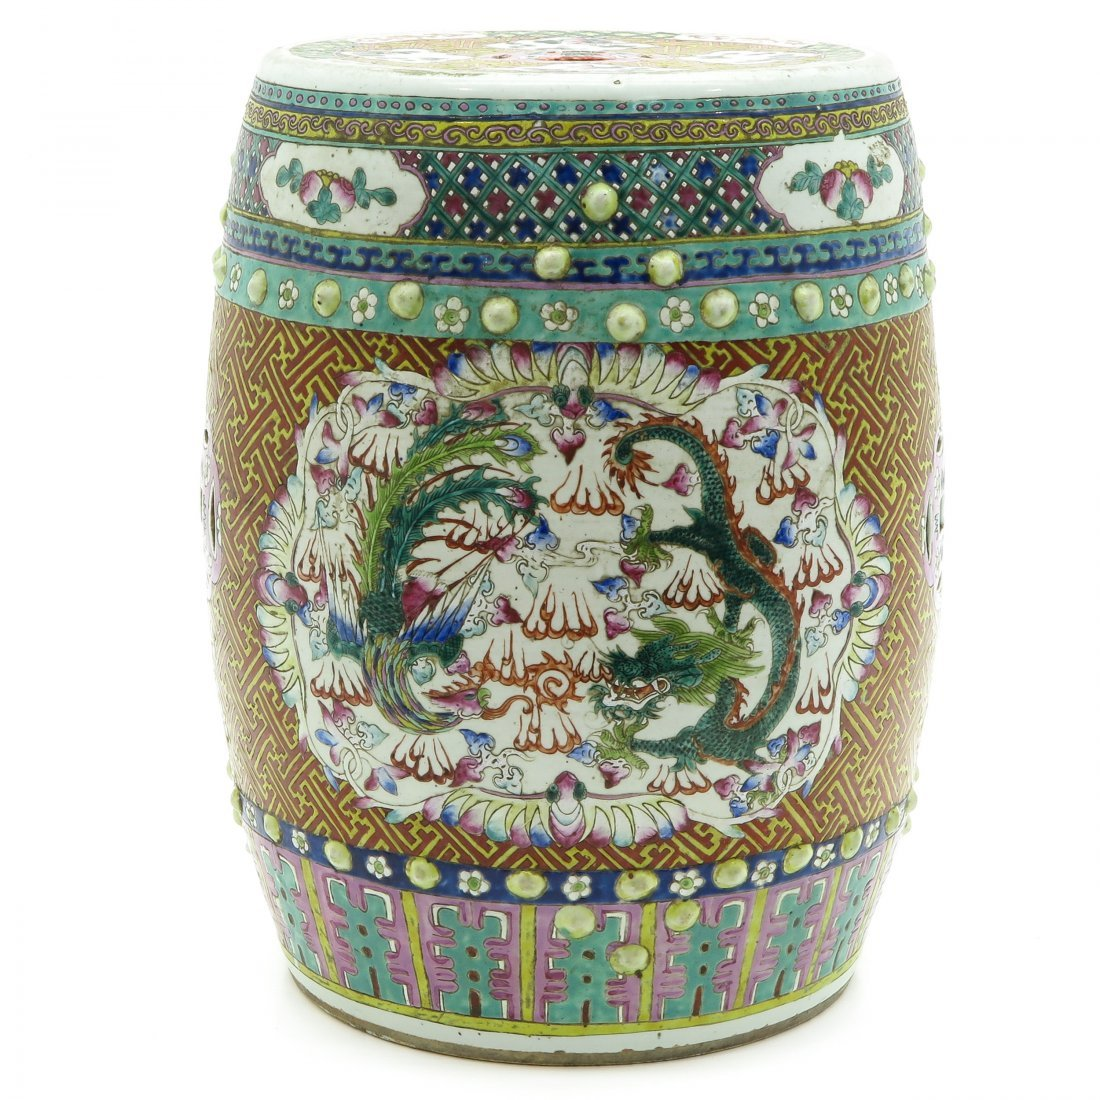 19th Century China Porcelain Garden Seat